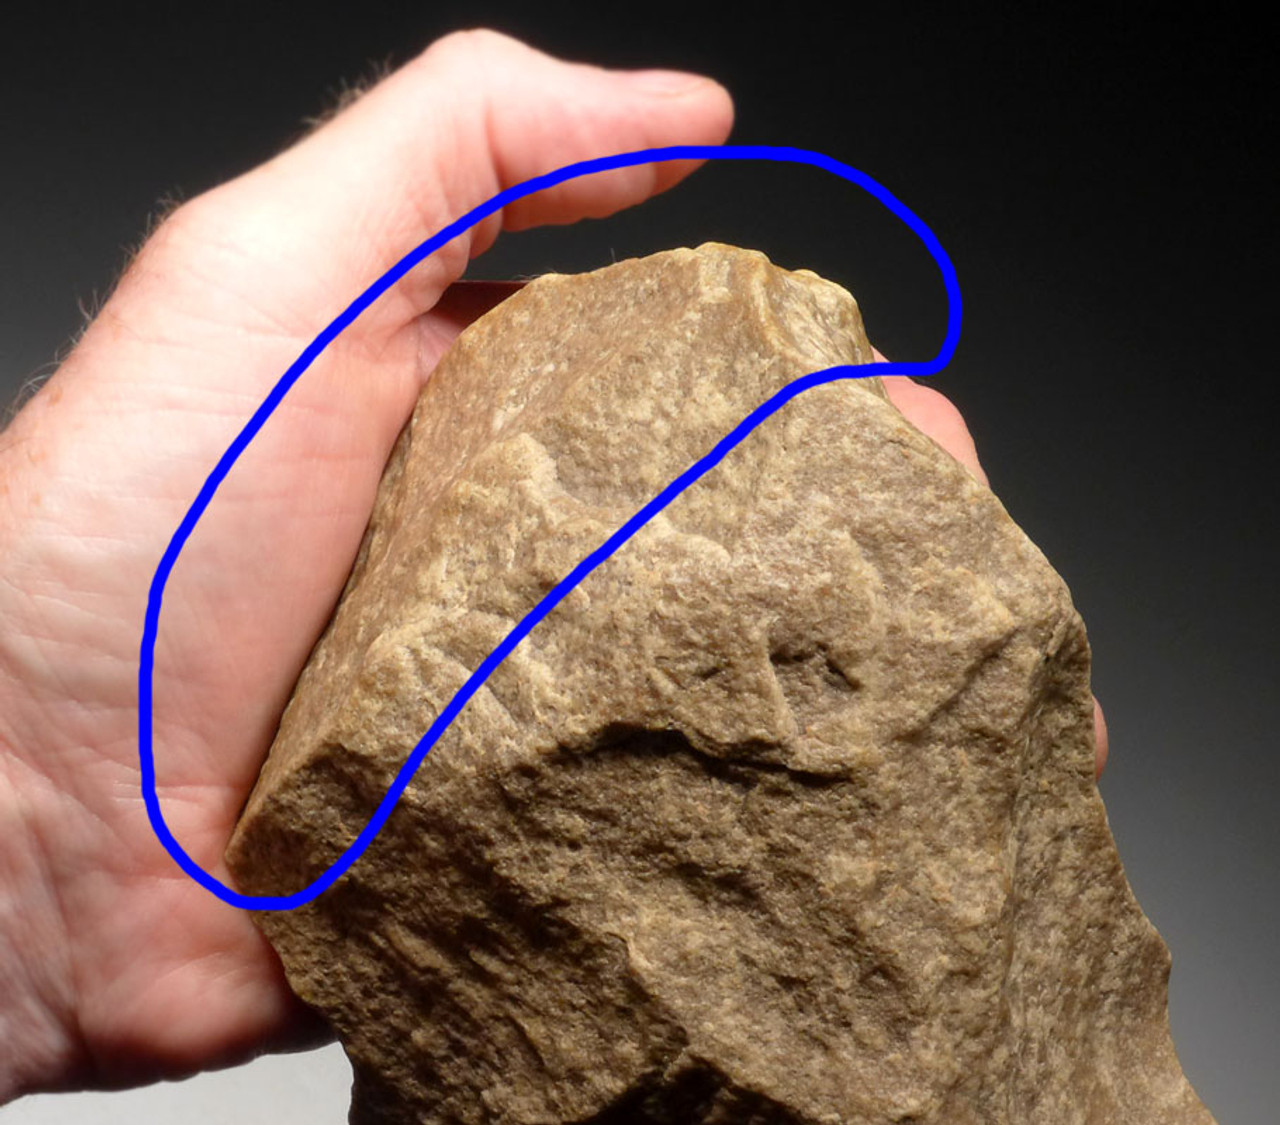 ACH247 - ENORMOUS MUSEUM GRADE MASTERPIECE AFRICAN ACHEULEAN HAND AXE FOR LARGE GAME BUTCHERING AND PRESTIGE